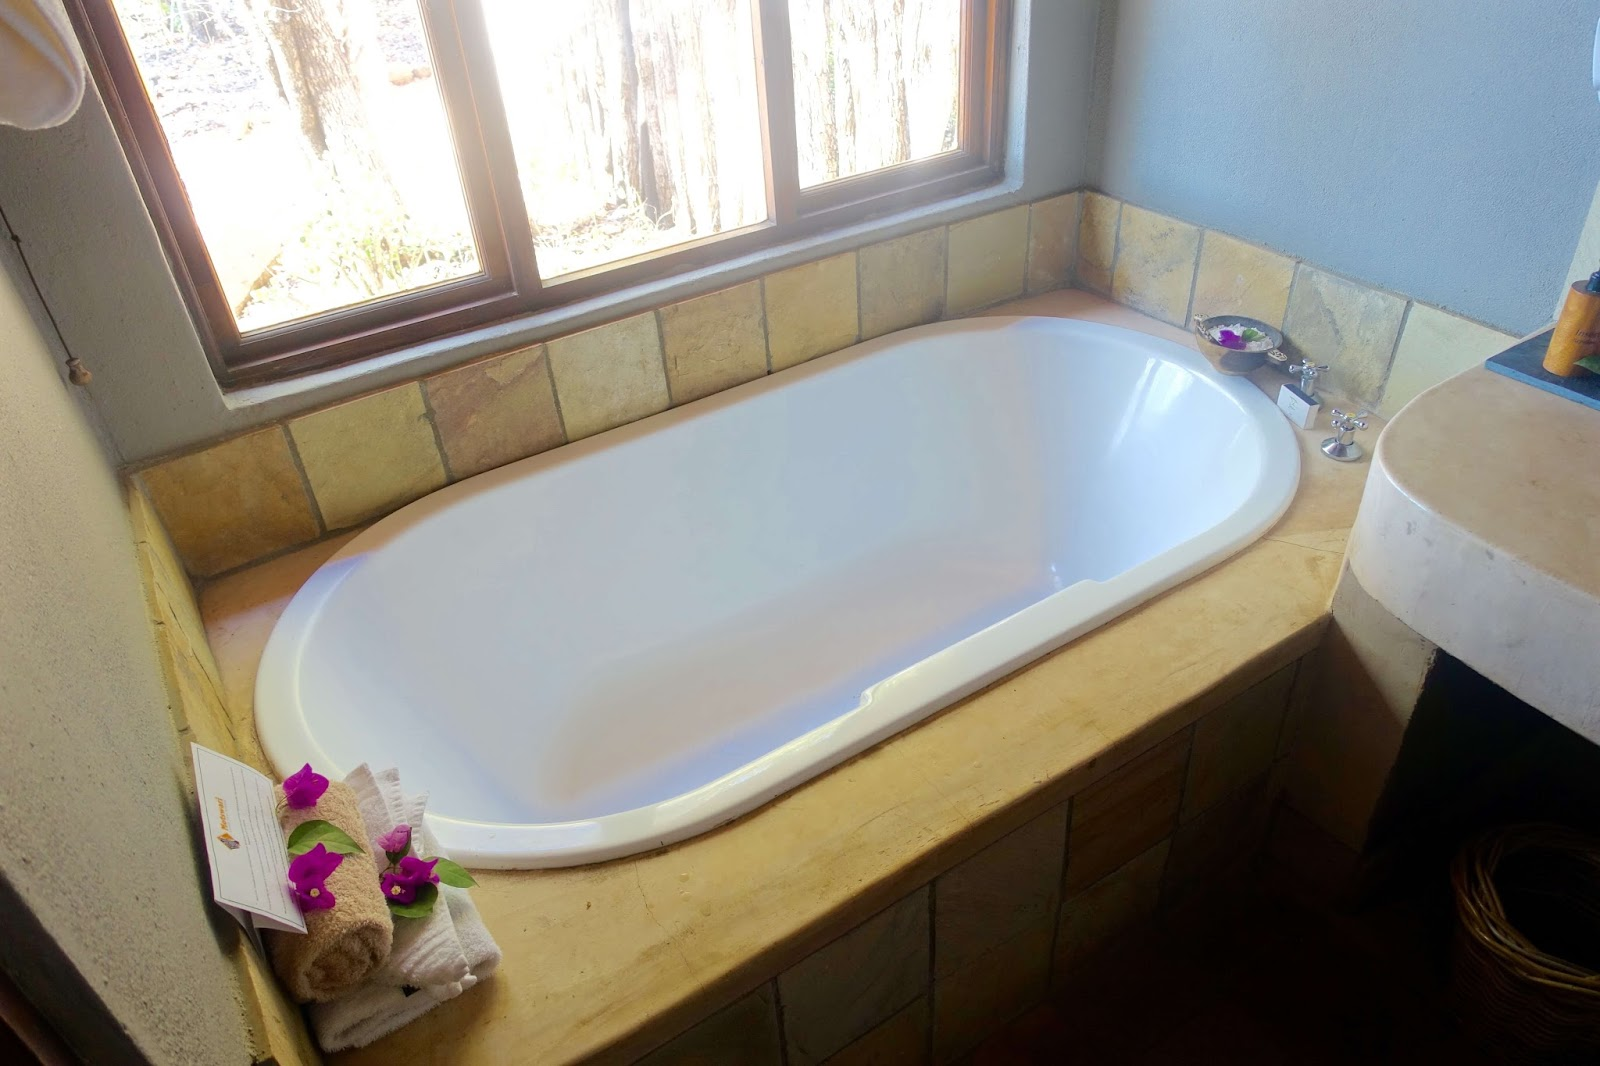 bath tub at game lodge in south africa